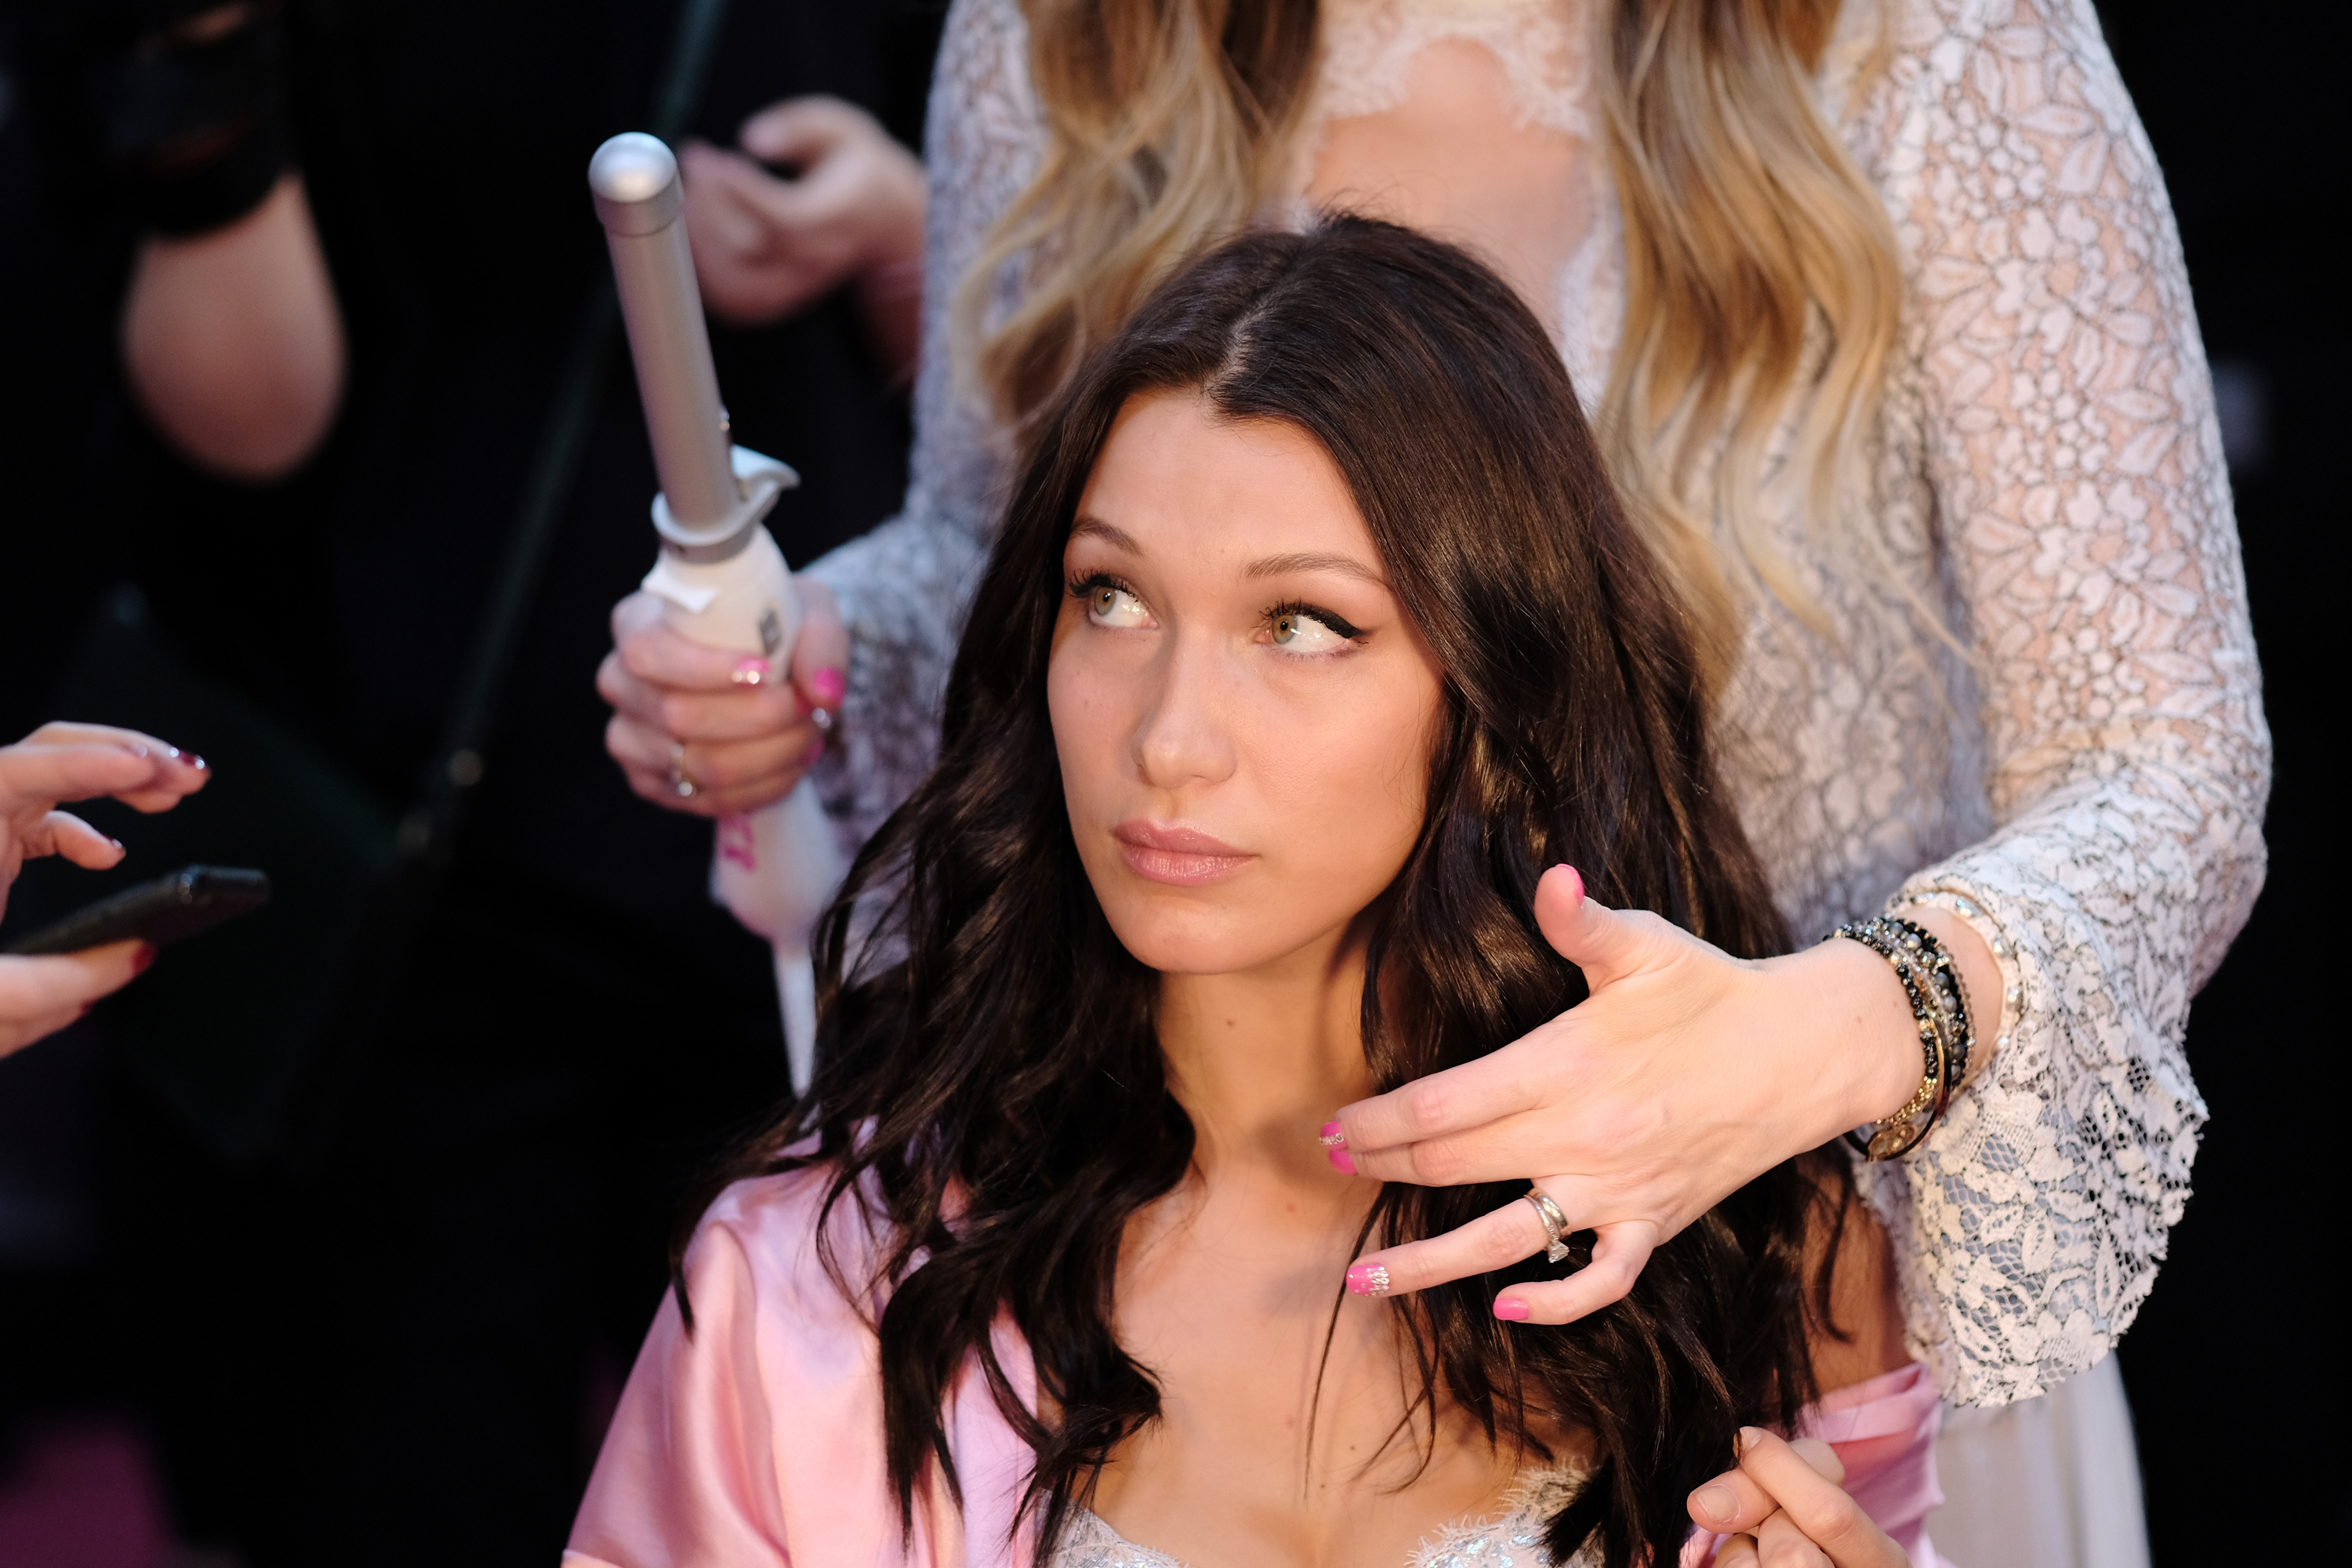 PARIS, FRANCE – NOVEMBER 30: Bella Hadid has her Hair & Makeup done prior the 2016 Victoria's Secret Fashion Show on November 30, 2016 in Paris, France.